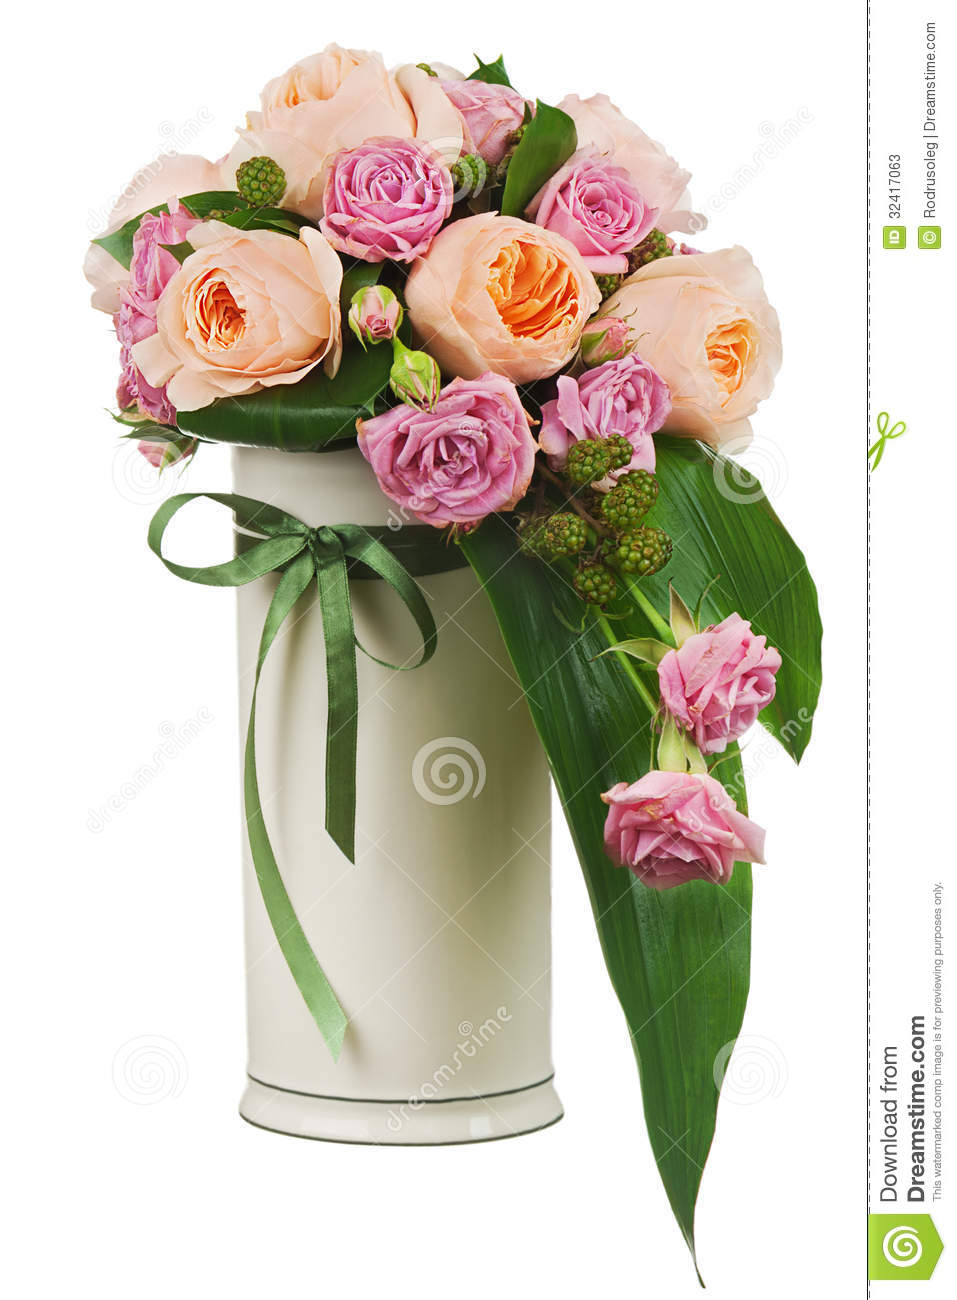 Colorful flower bouquet from roses and peon flowers in vase isol colorful flower bouquet from roses and peon flowers in vase isol reviewsmspy